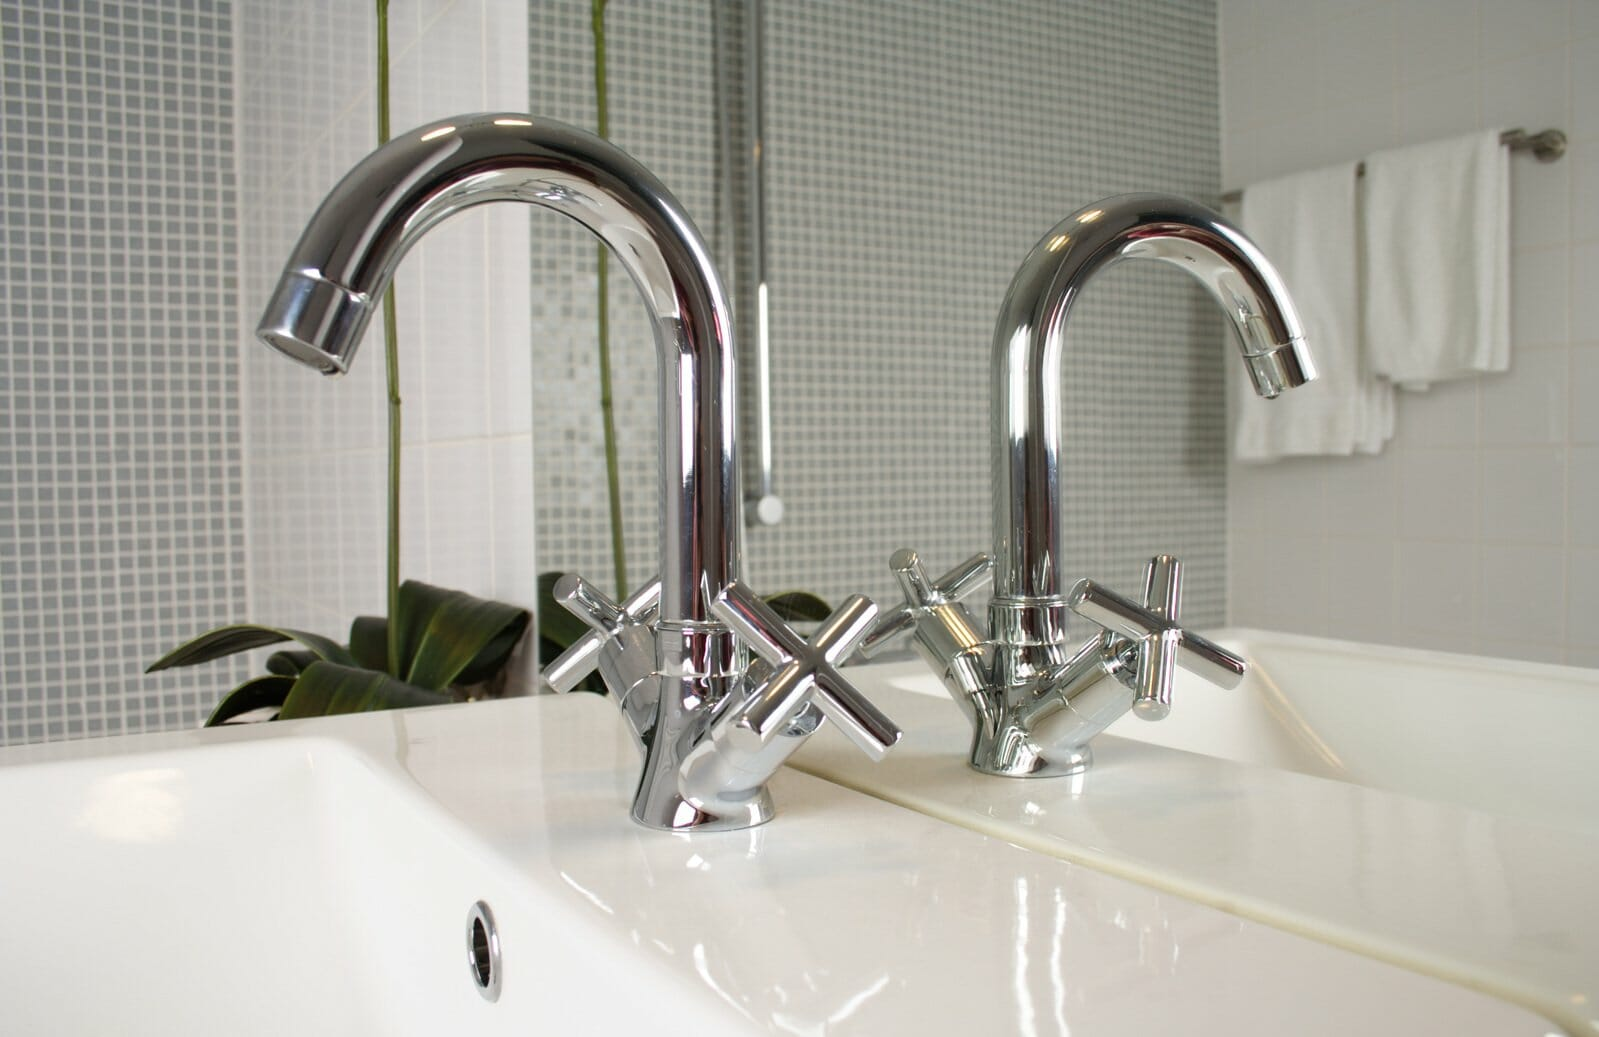 When You\'re Showering Does Water Come From Your Bathtub Faucet?